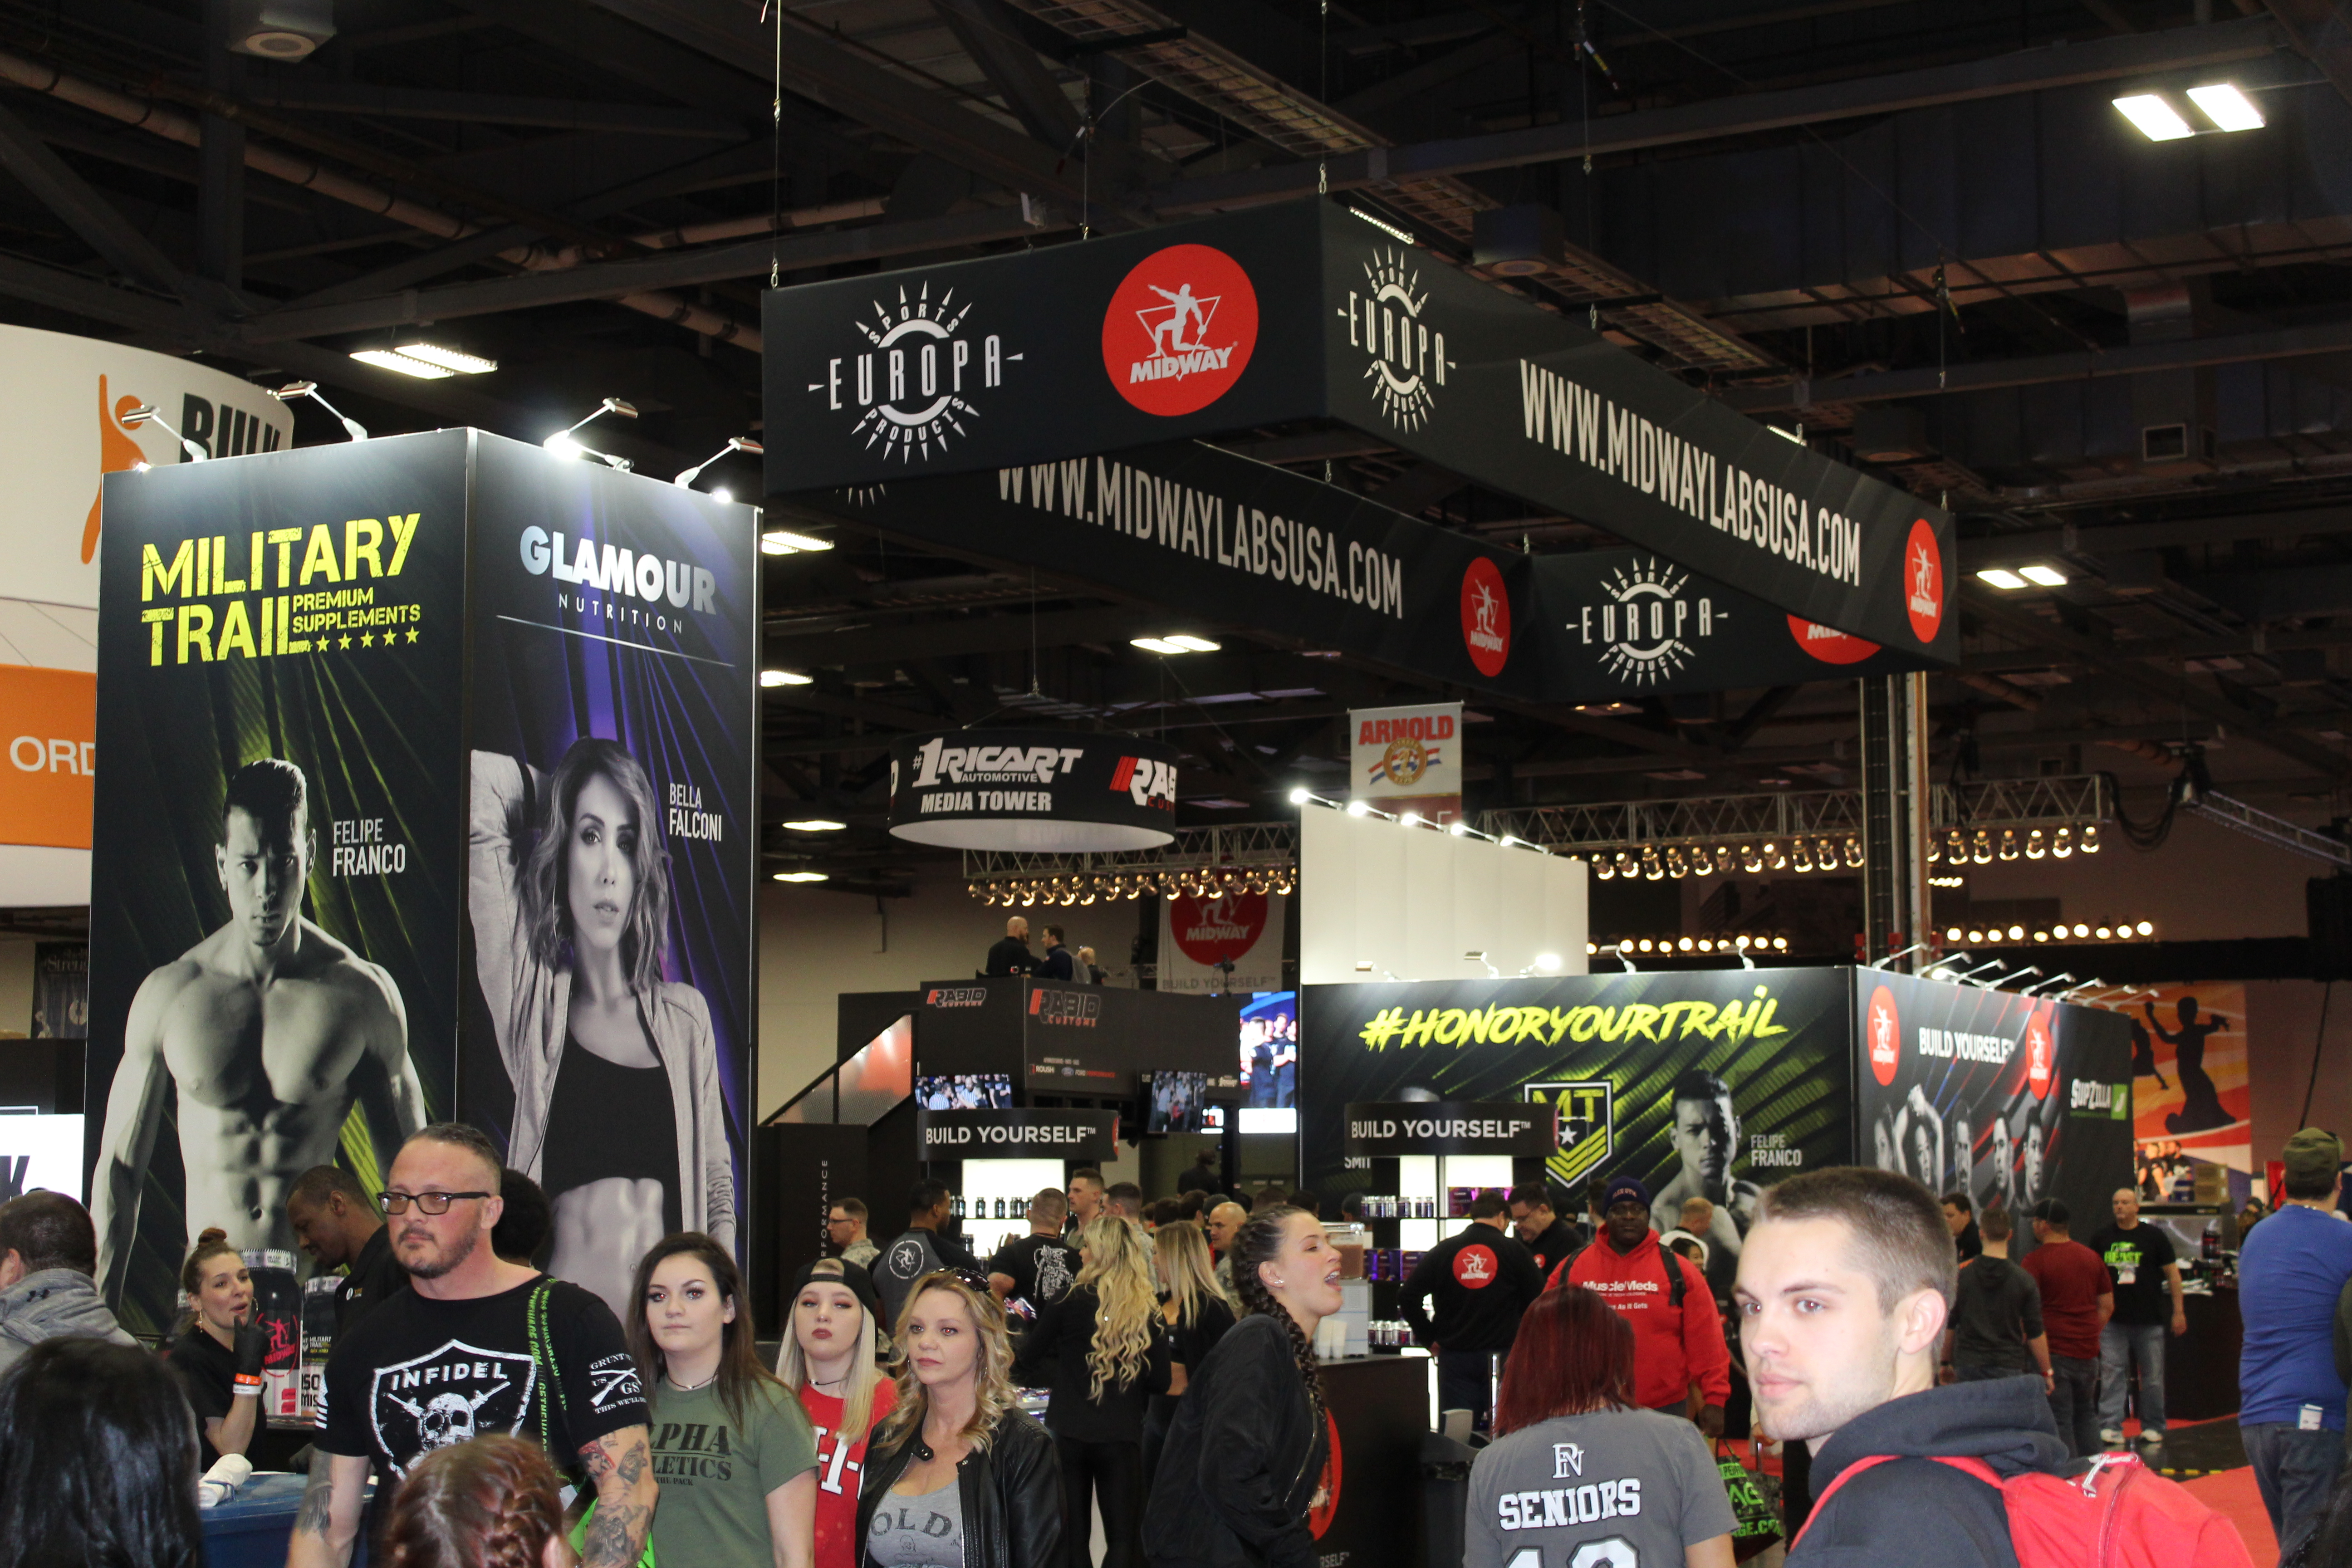 Kicking off the Arnold Sports Expo 2018 with Midway Labs USA